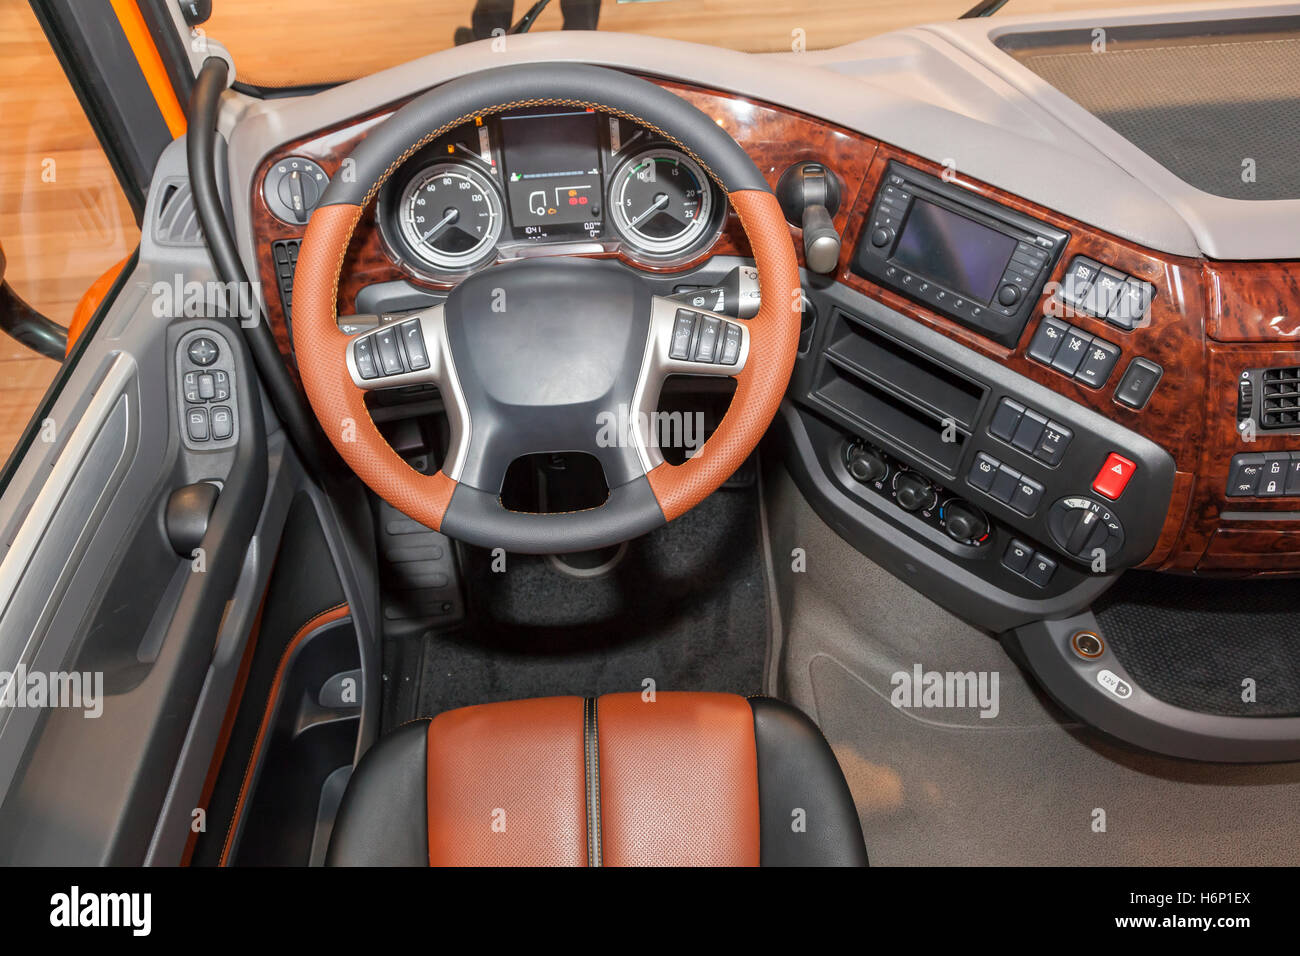 Dashboard of a modern truck with a luxury interior - Stock Image